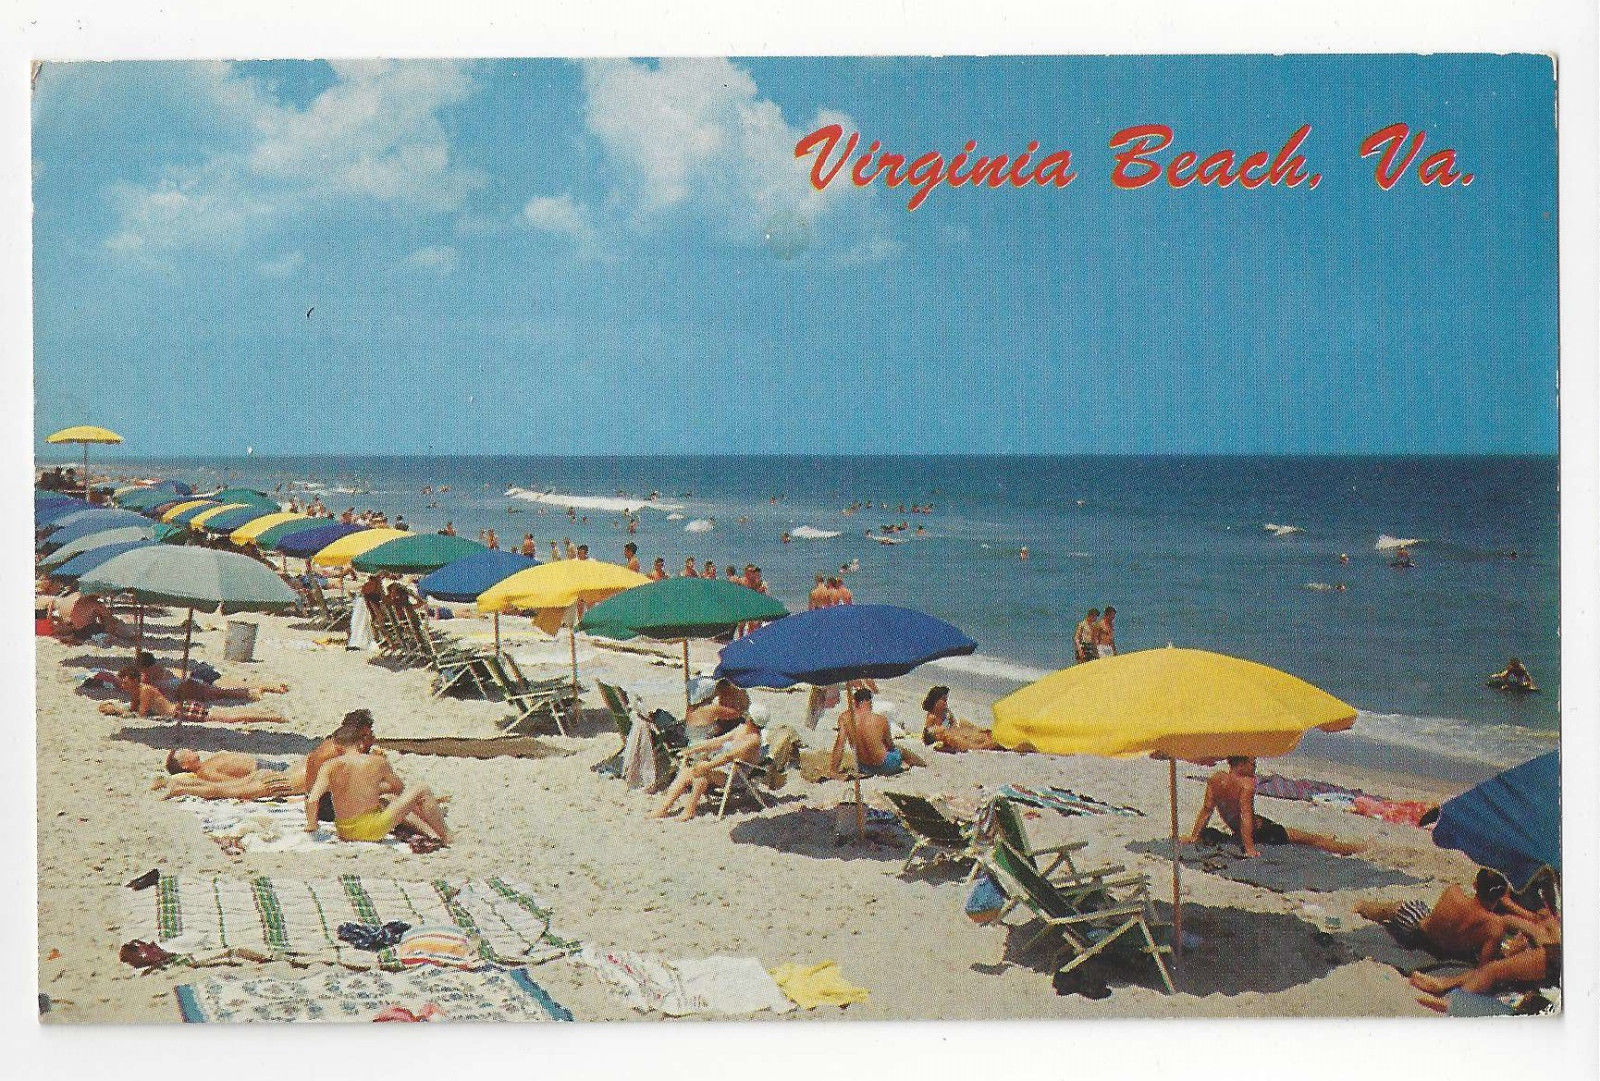 VA Virginia Beach Umbrellas Bathers Vtg 1953 Postcard